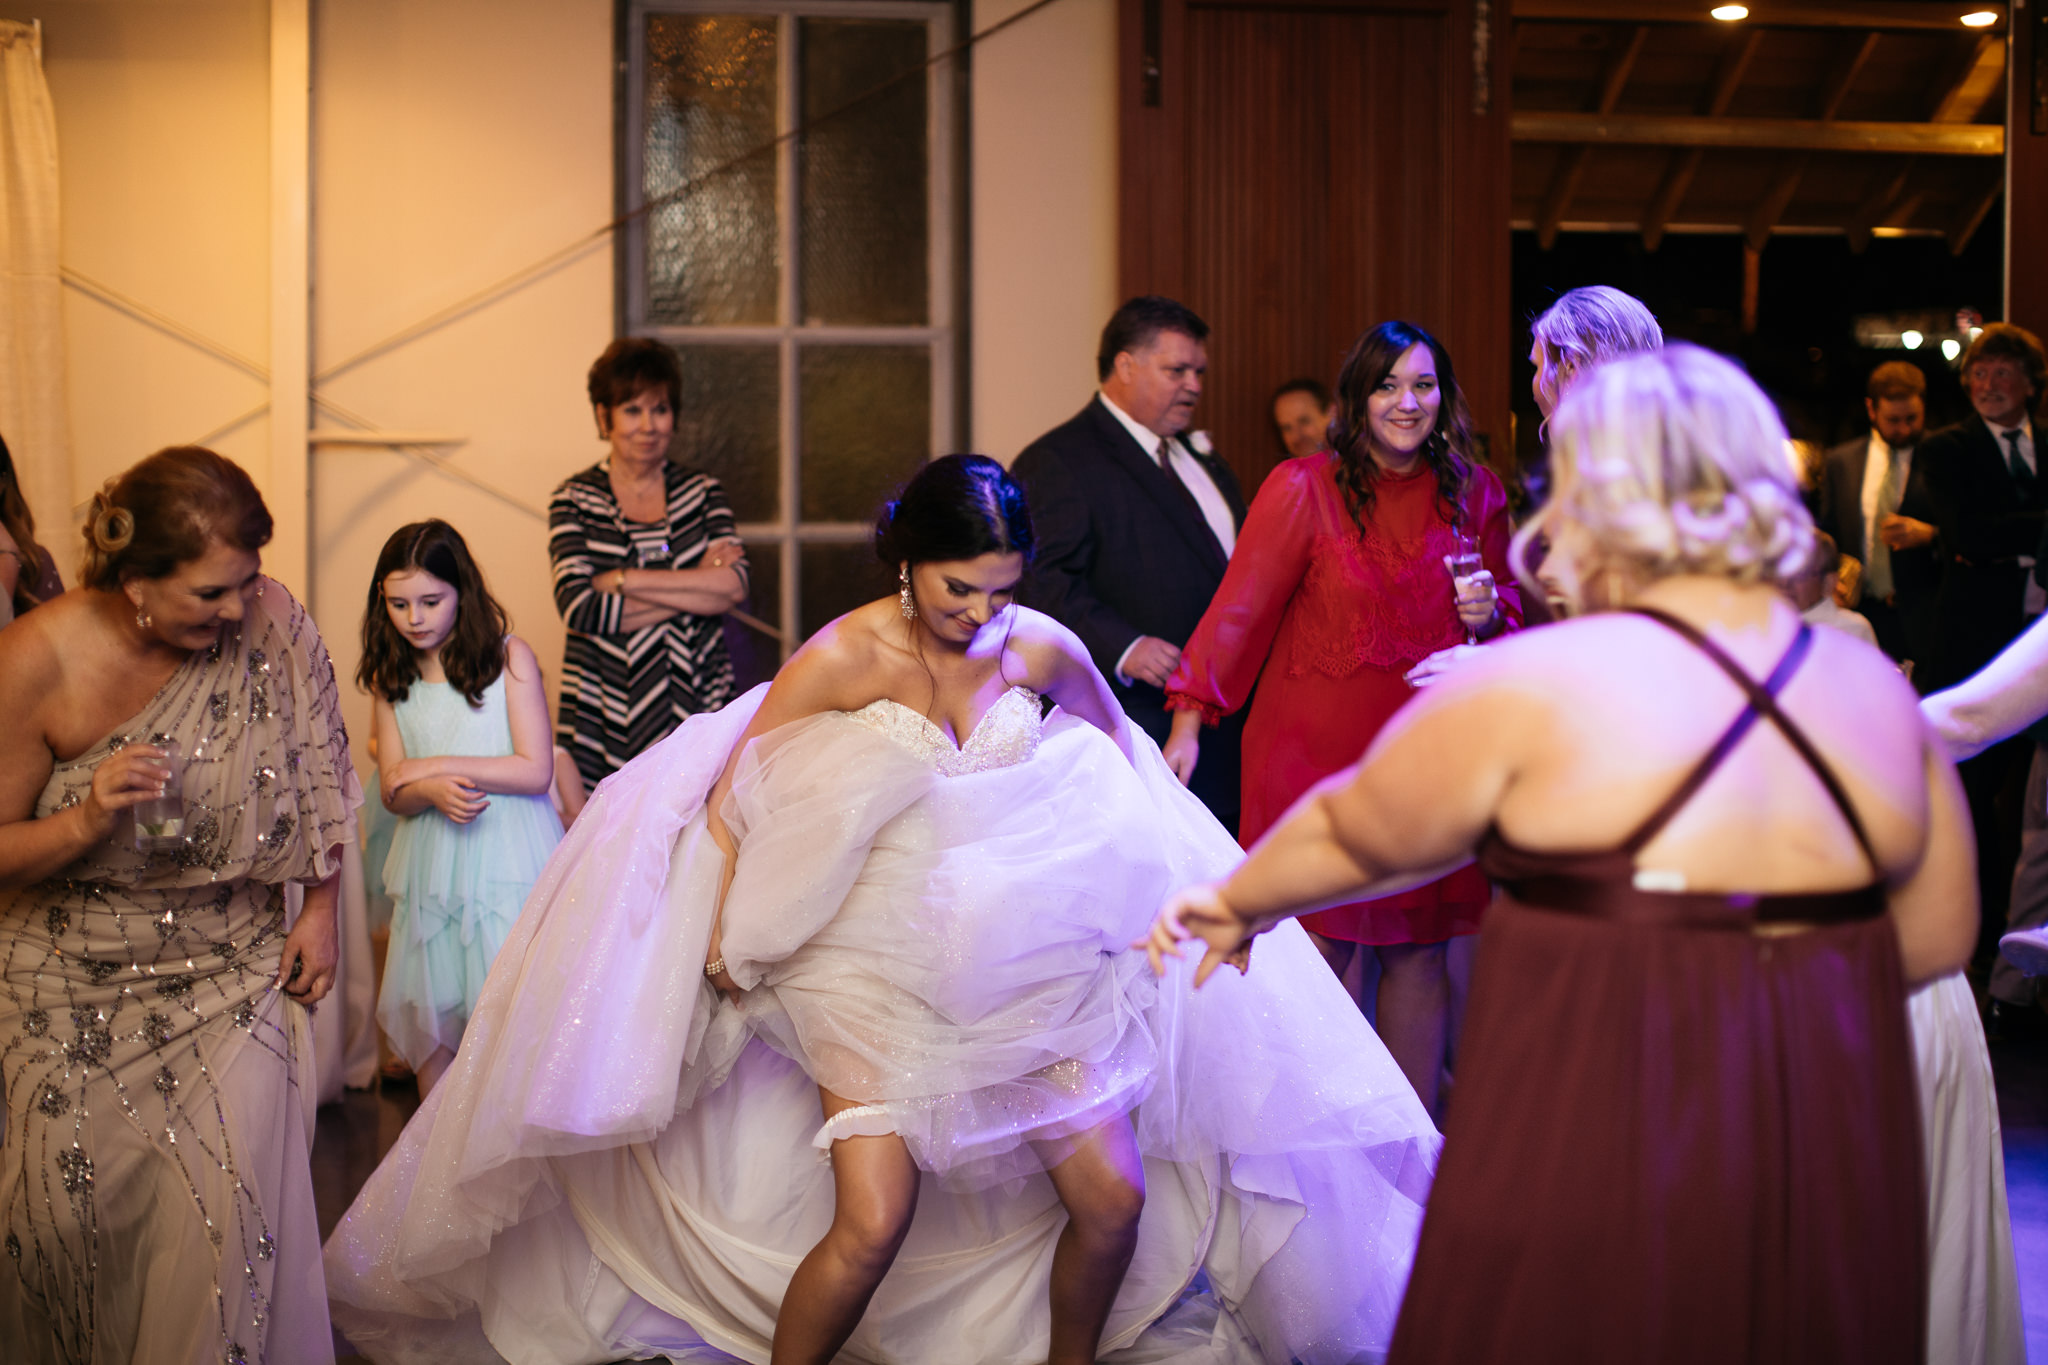 memphis-wedding-photographer-the-warmth-around-you-best-dance-moves-5.jpg